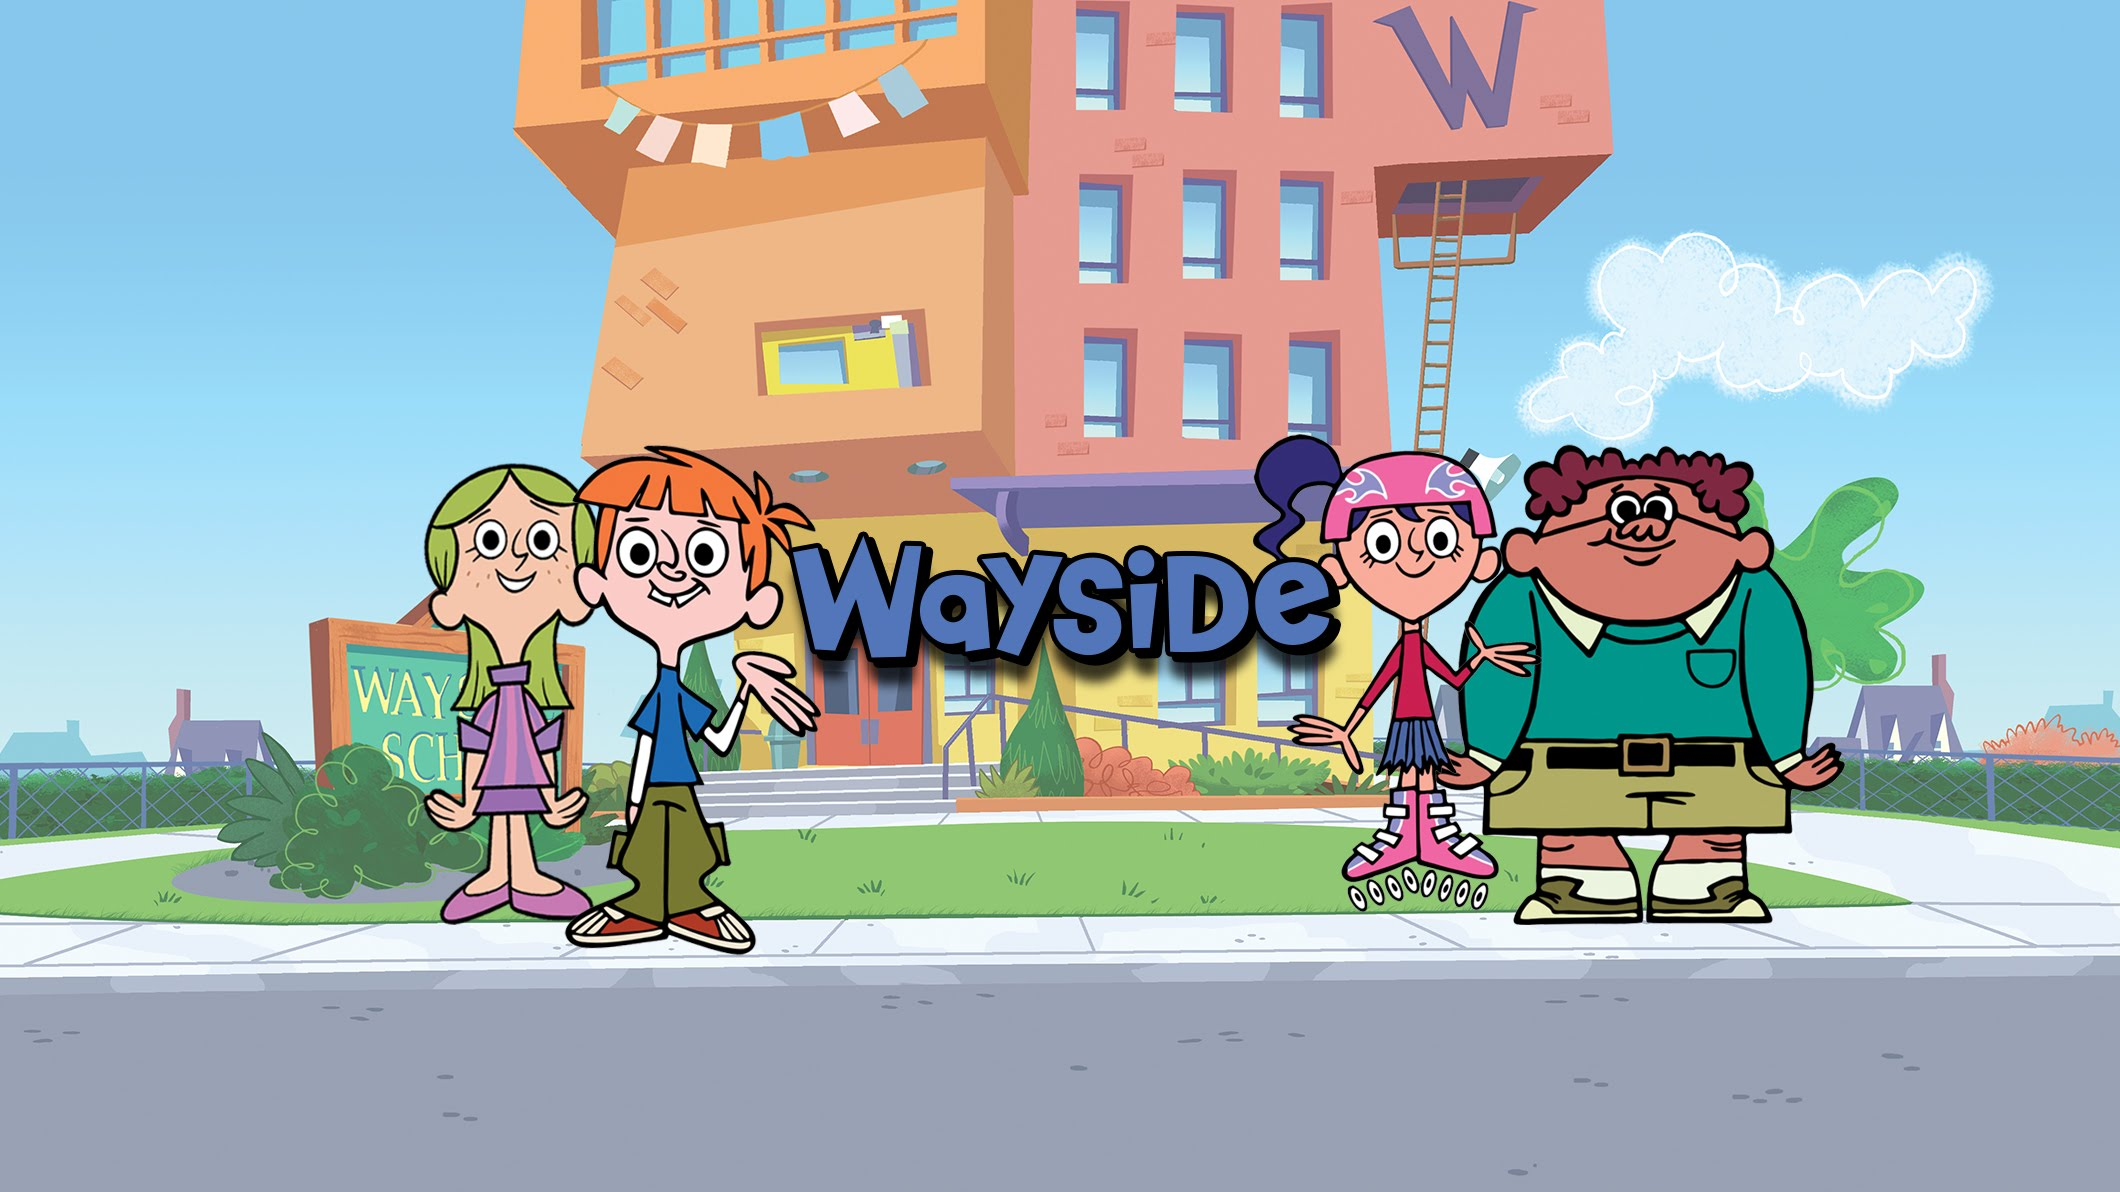 Welcome to the Wayside.